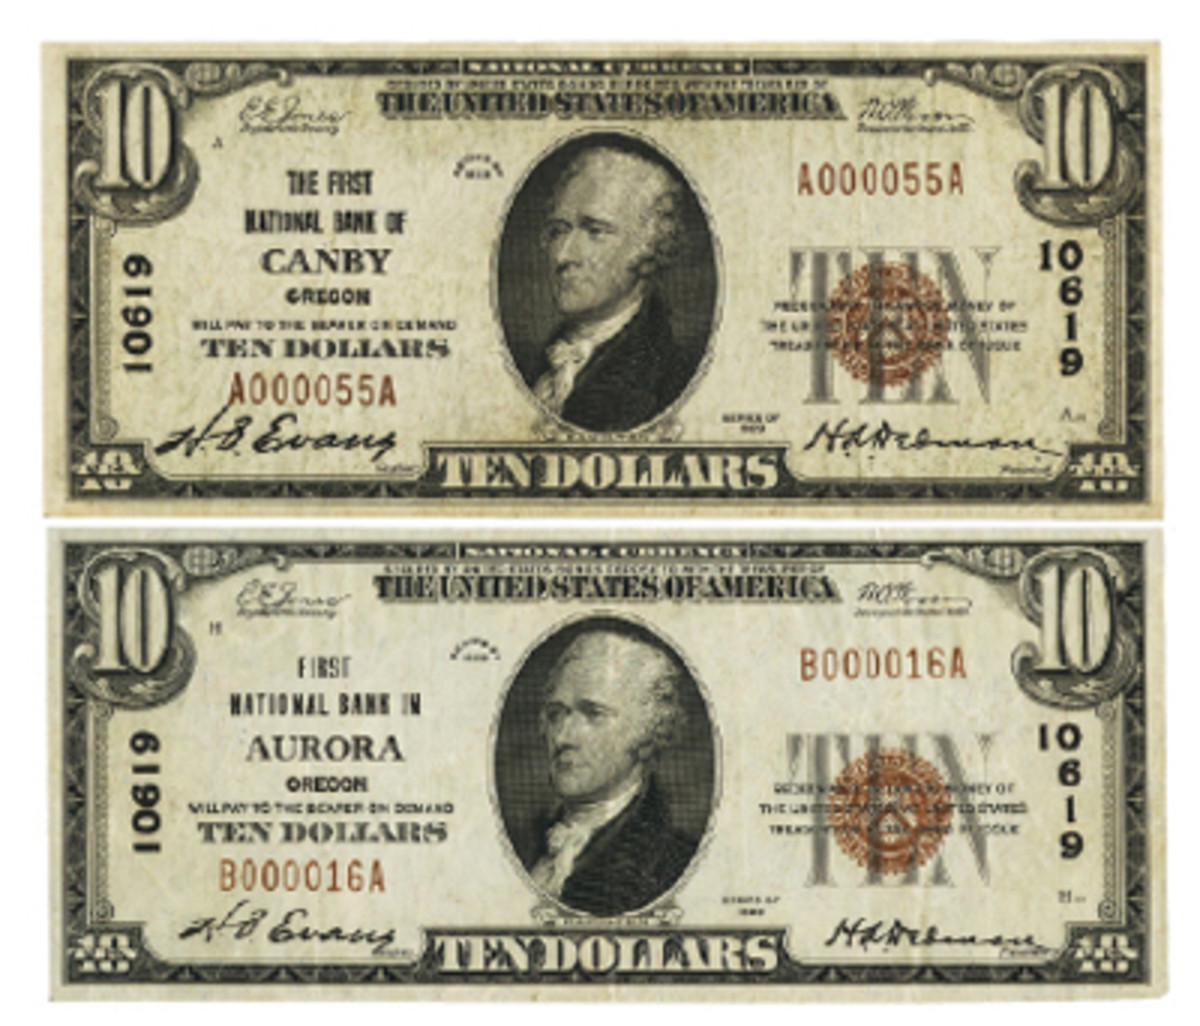 Figure 8. A relocation from Canby, Oregon, to Aurora, Oregon, marked the April 1930 change of the name on the Series of 1929 note on the bottom.